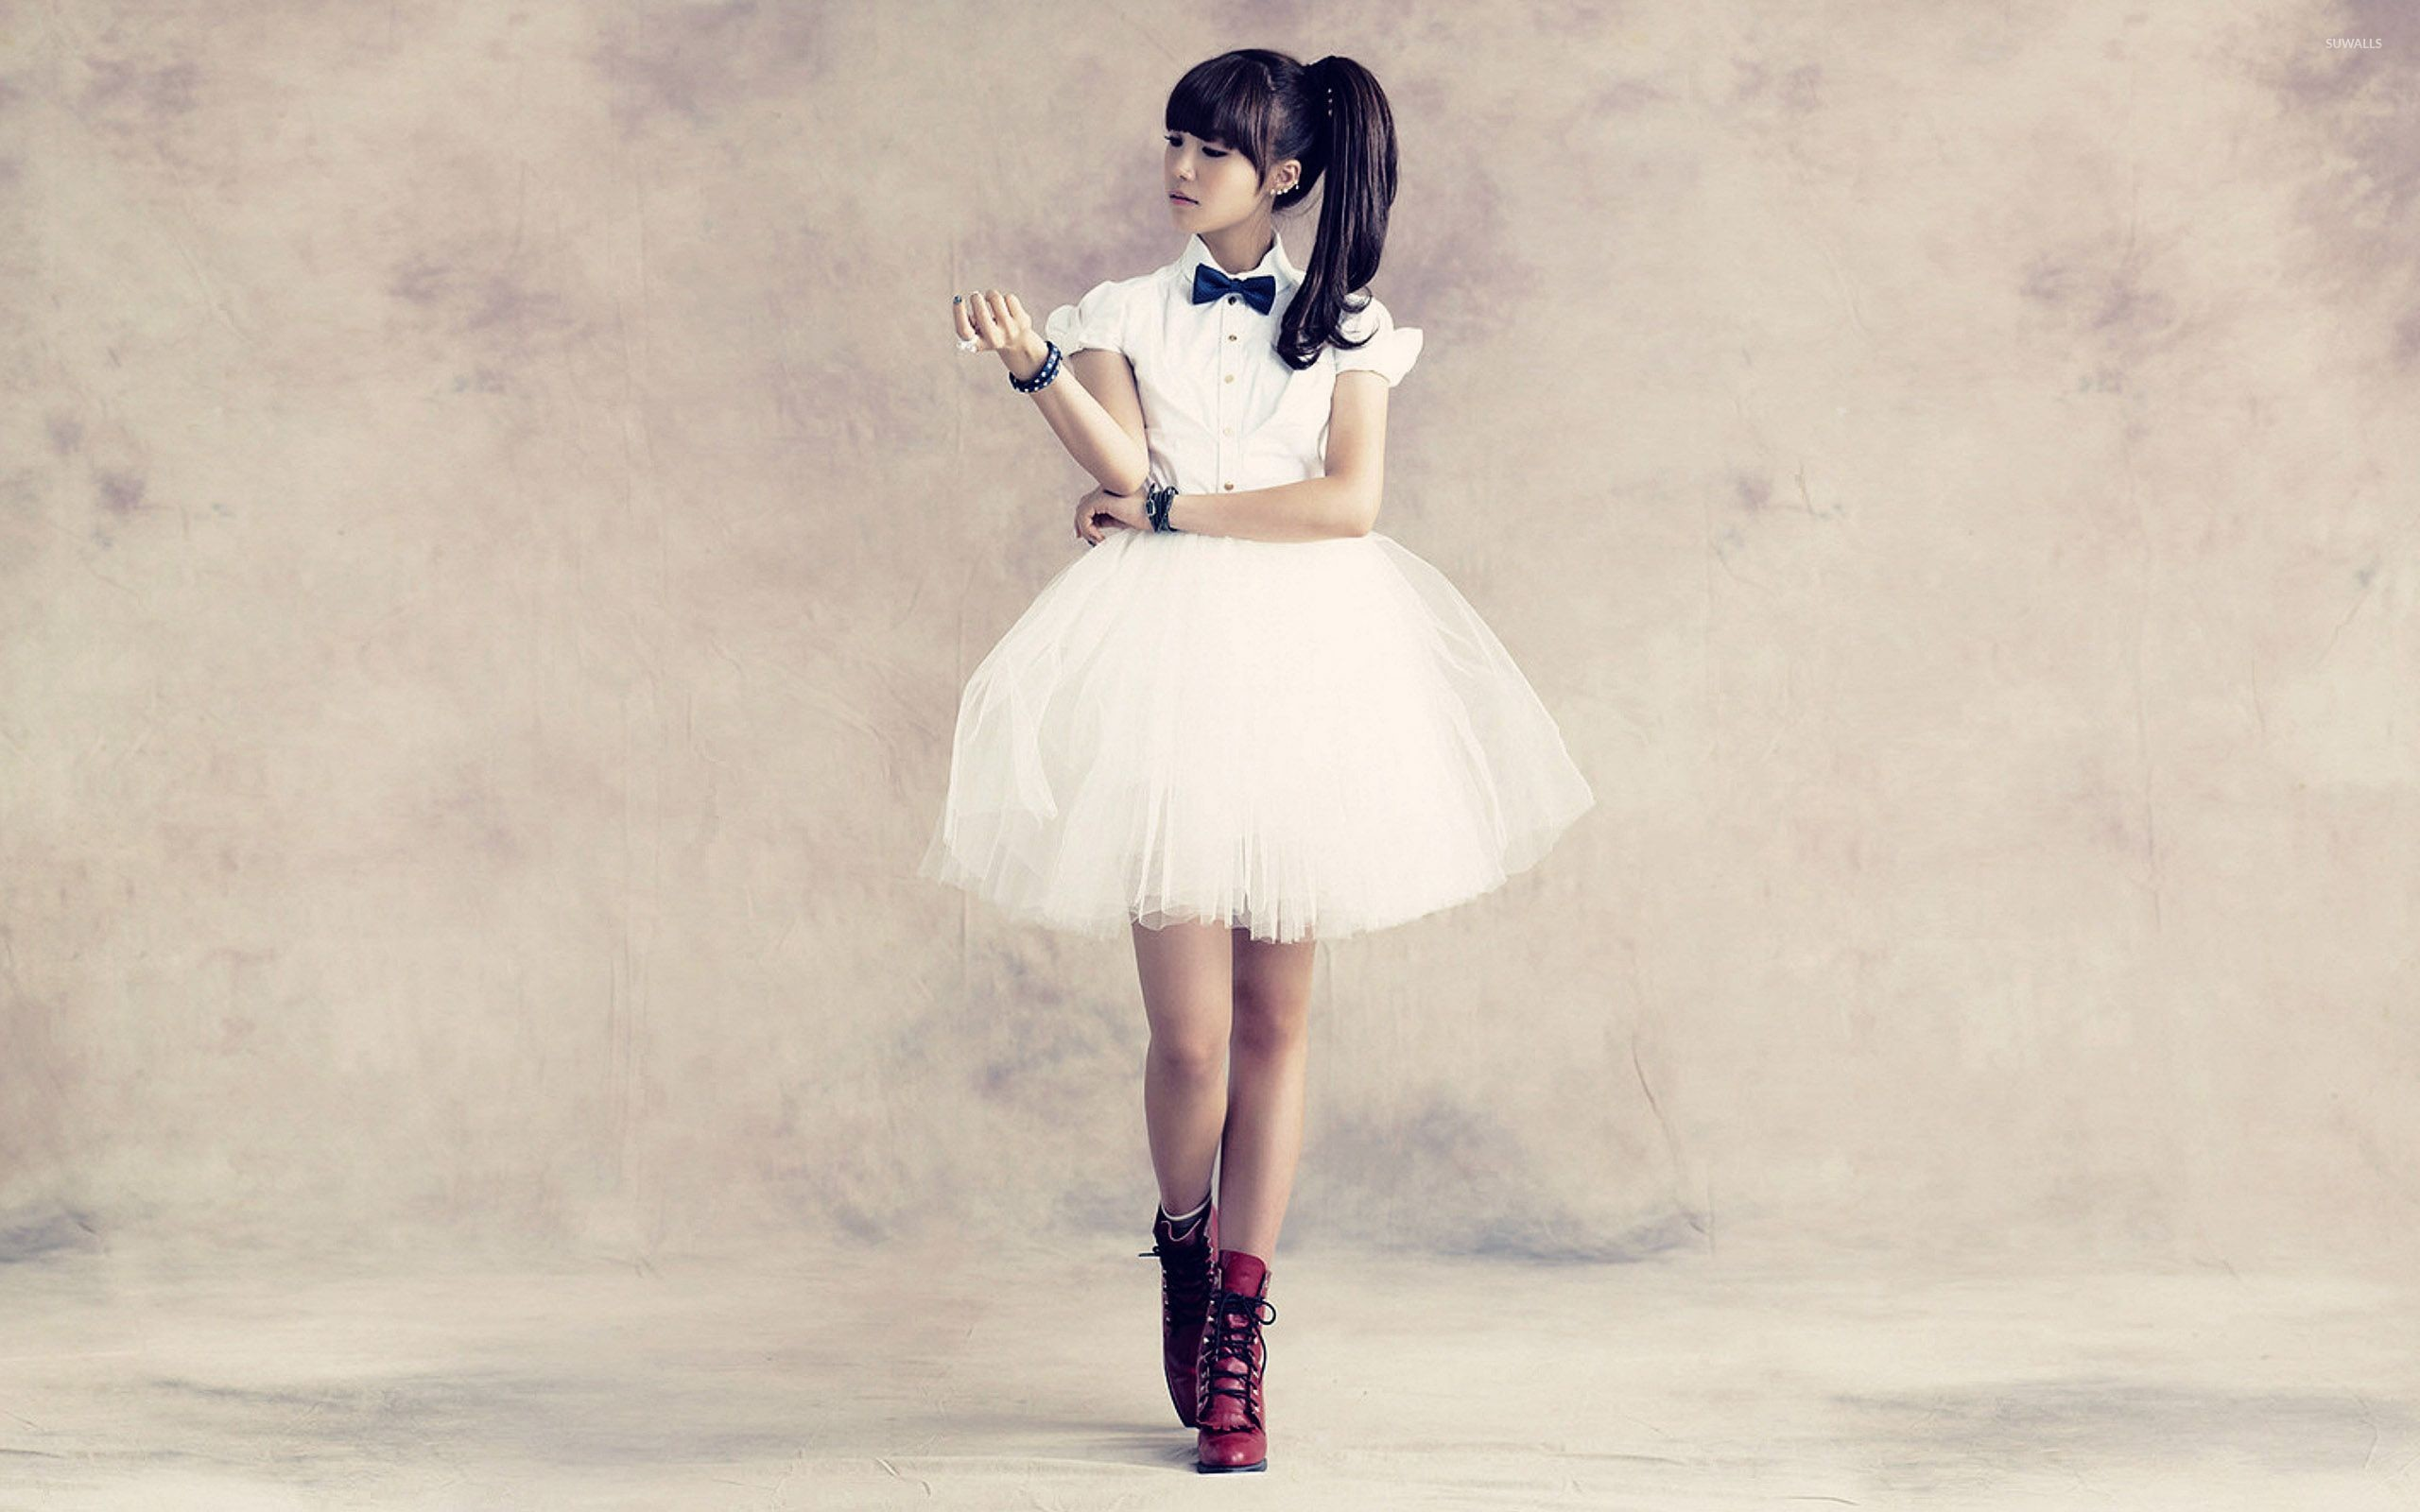 Res: 2560x1600, Jung Eun-ji - A Pink wallpaper